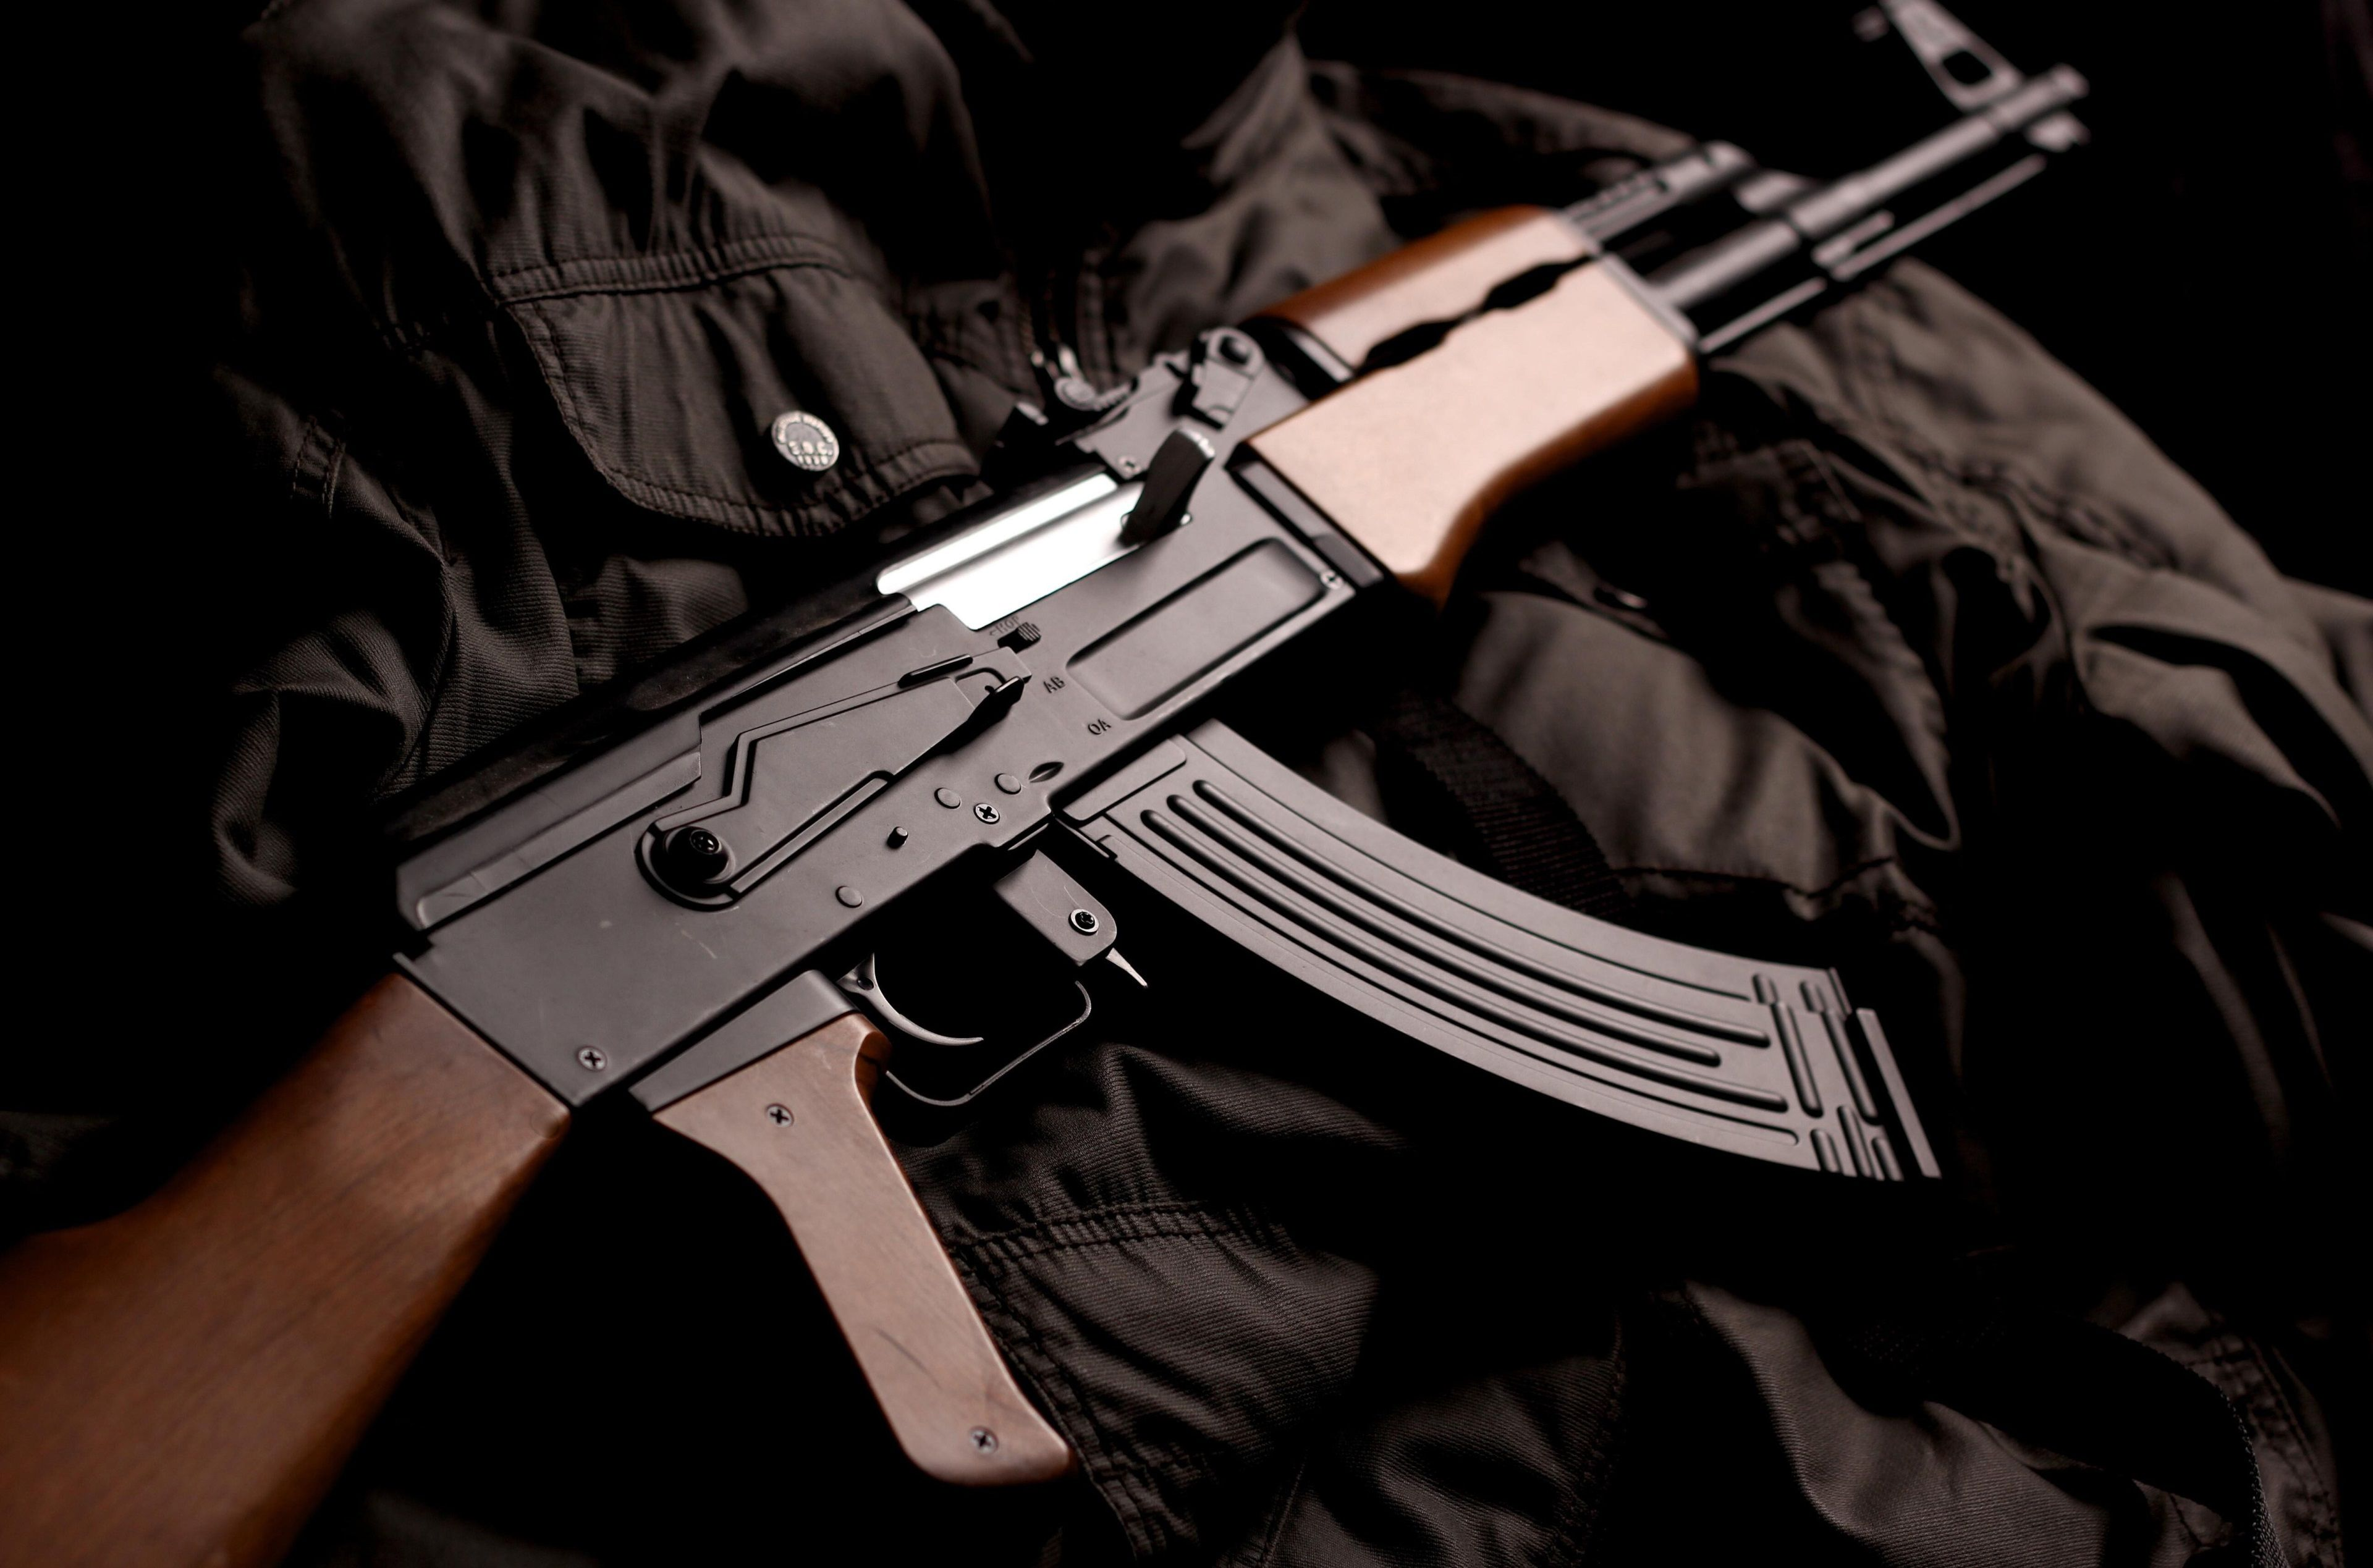 3840x2538 ak 74 4k full hd wallpaper | wallpapers and backgronds